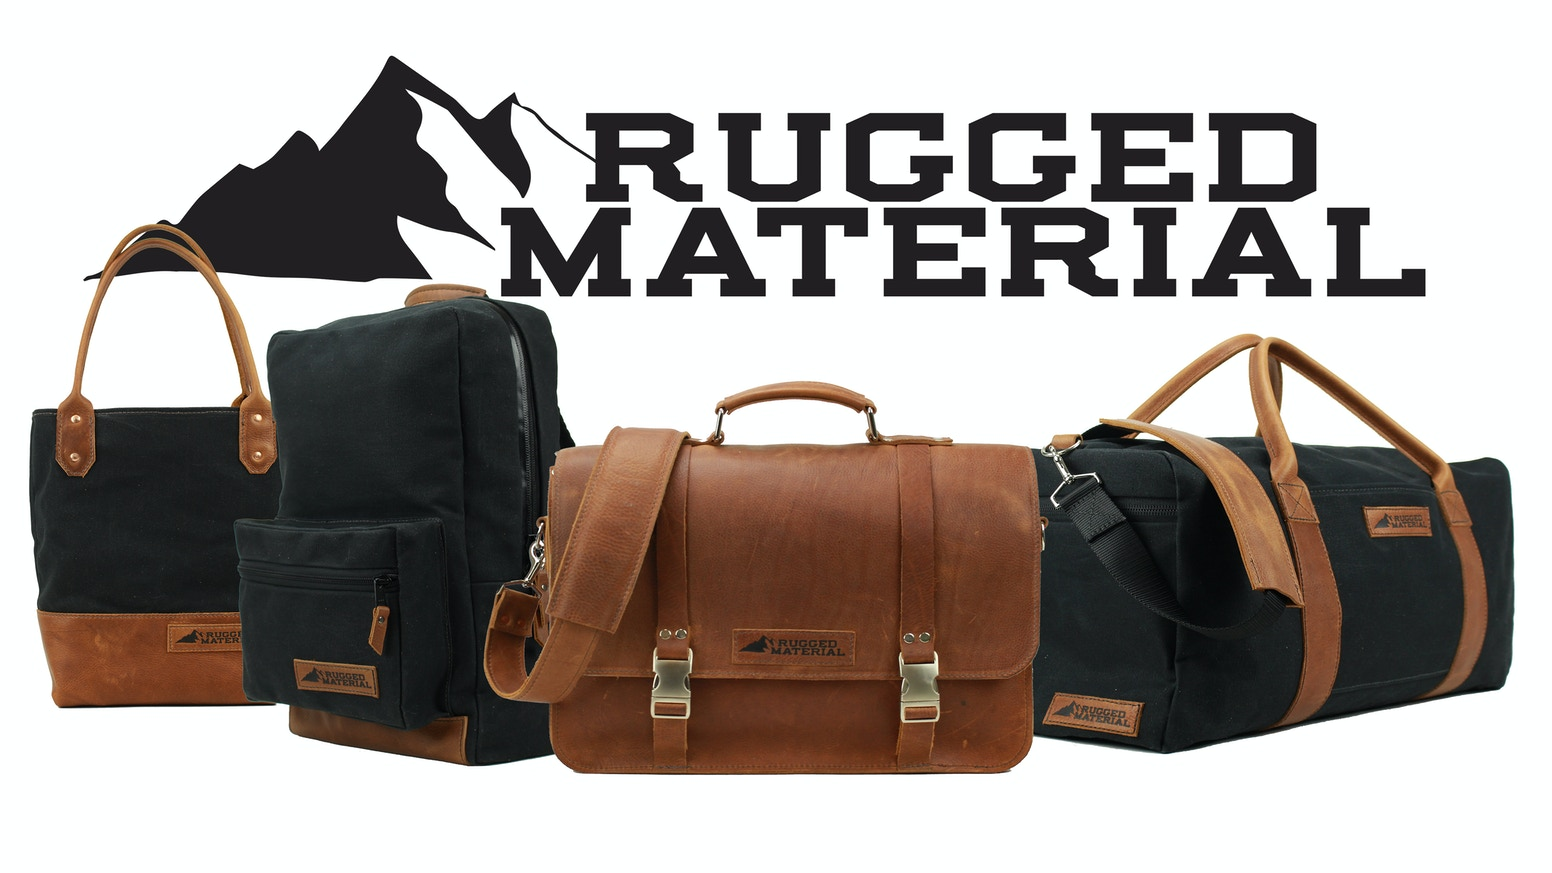 1adcc05579 Premium Leather Goods for Everyone. Made in U.S.A. Guaranteed for Life.  Delivered at wholesale